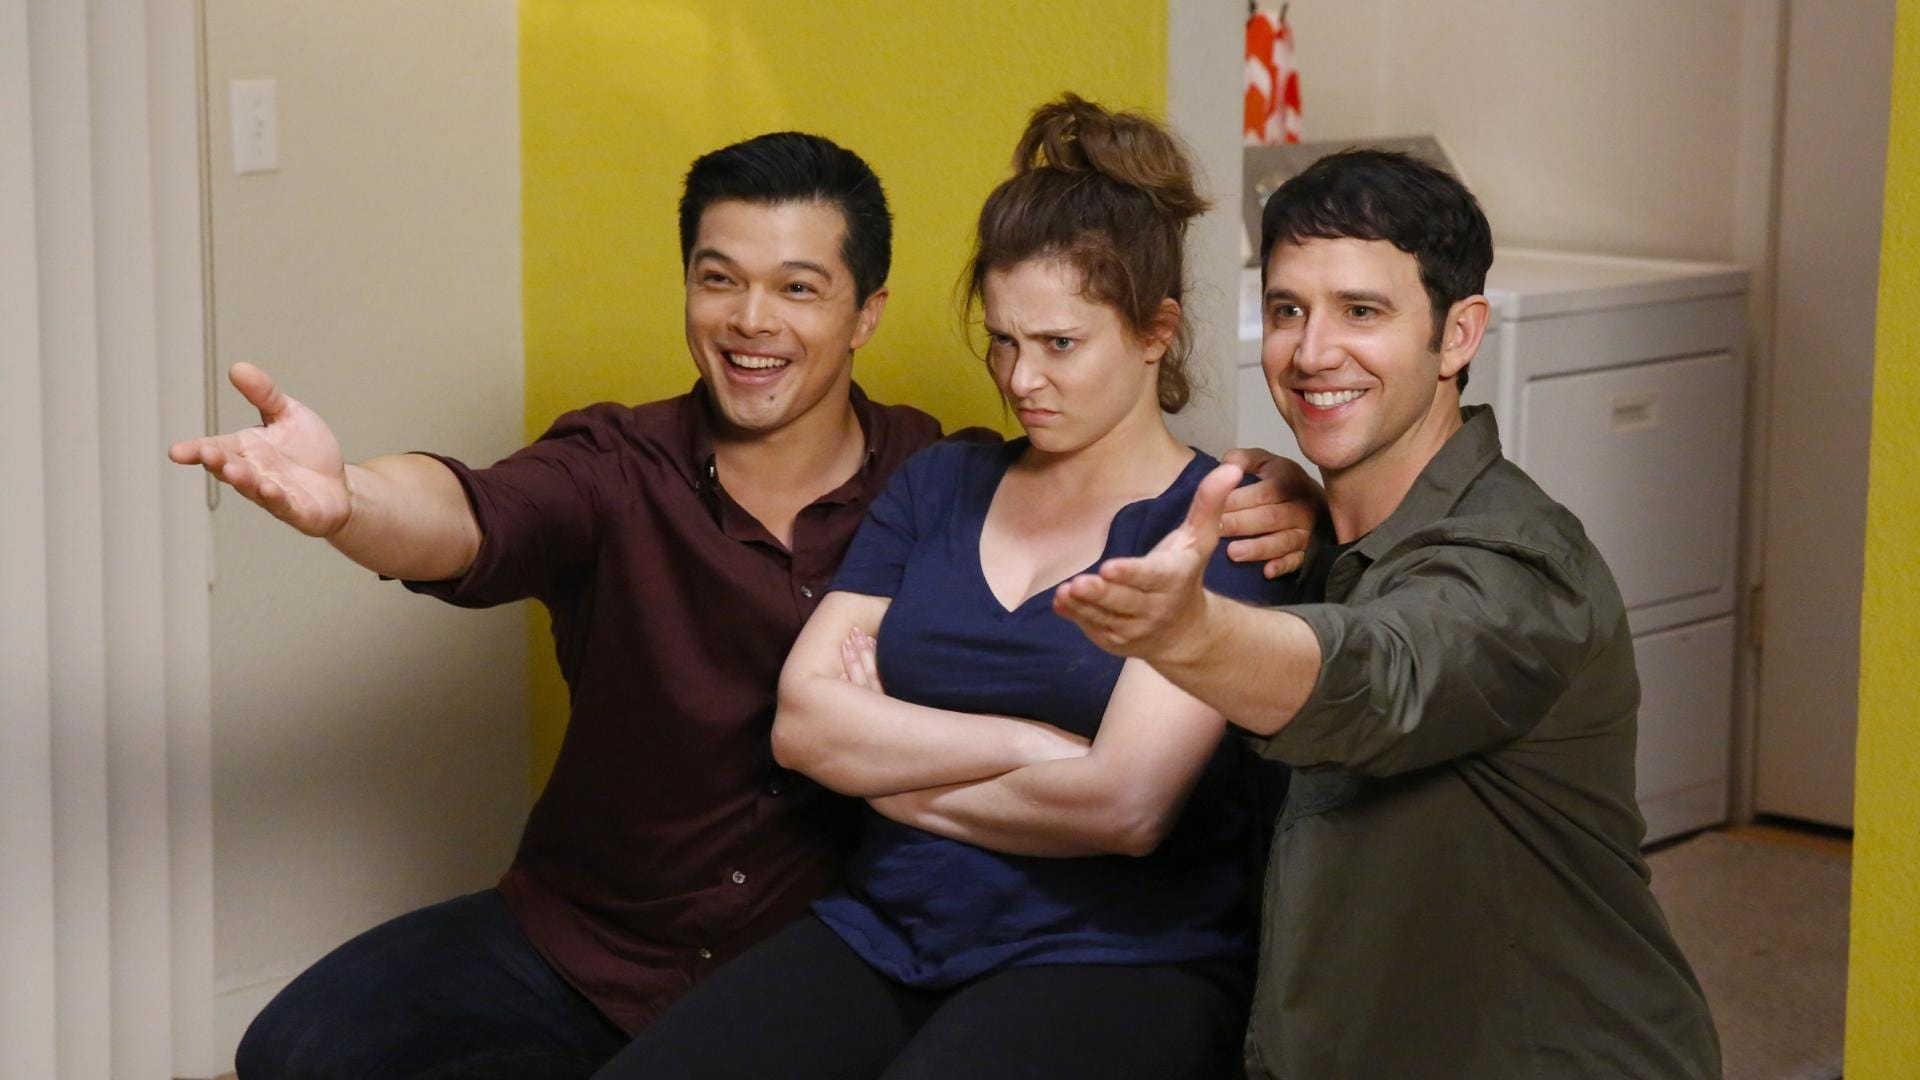 Crazy Ex-Girlfriend Season 2 :Episode 4  When Will Josh and His Friend Leave Me Alone?